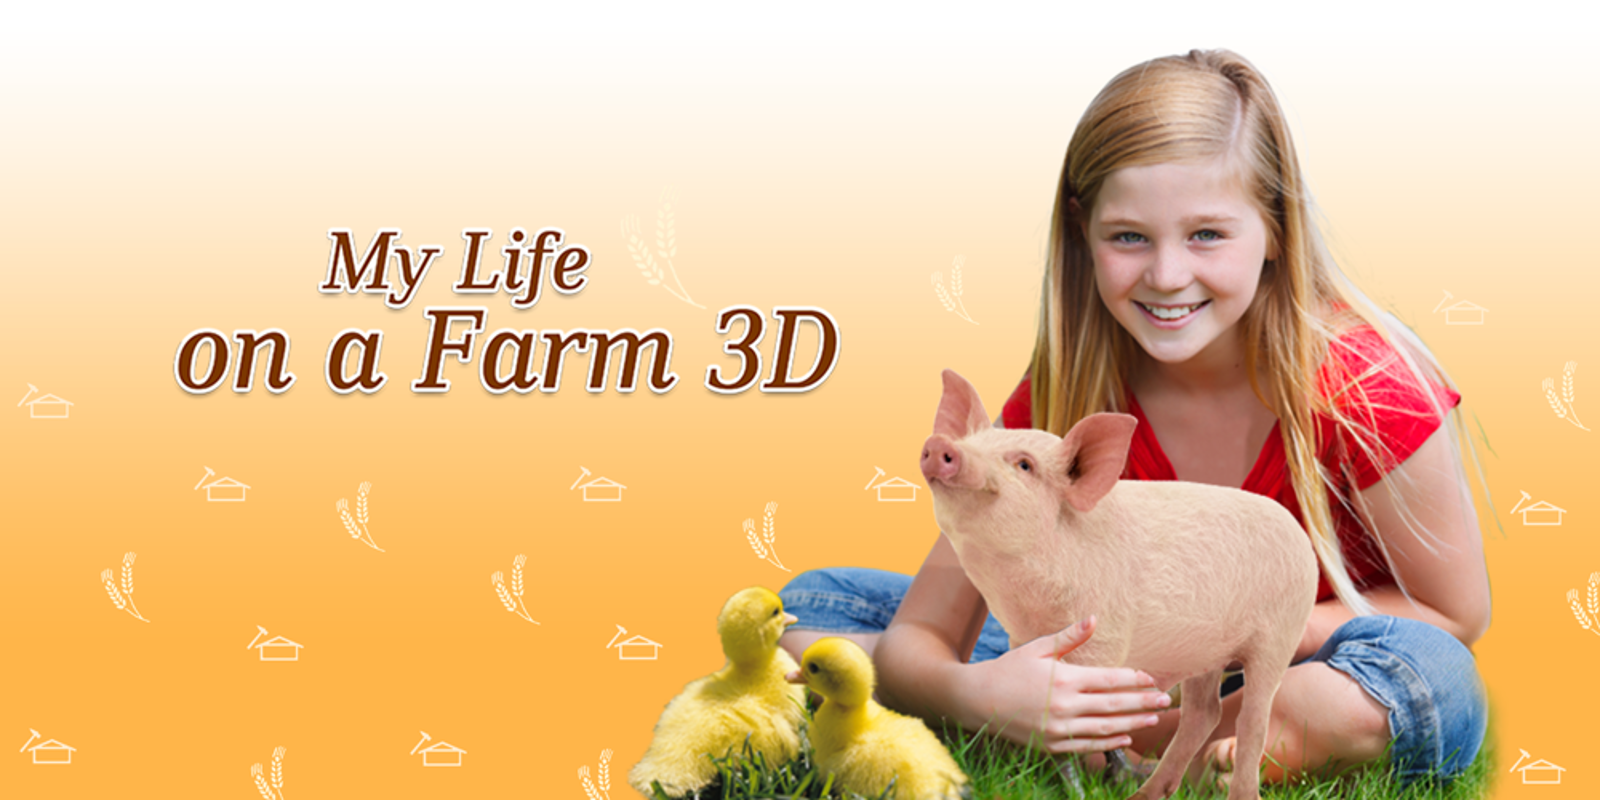 My Life on a Farm 3D